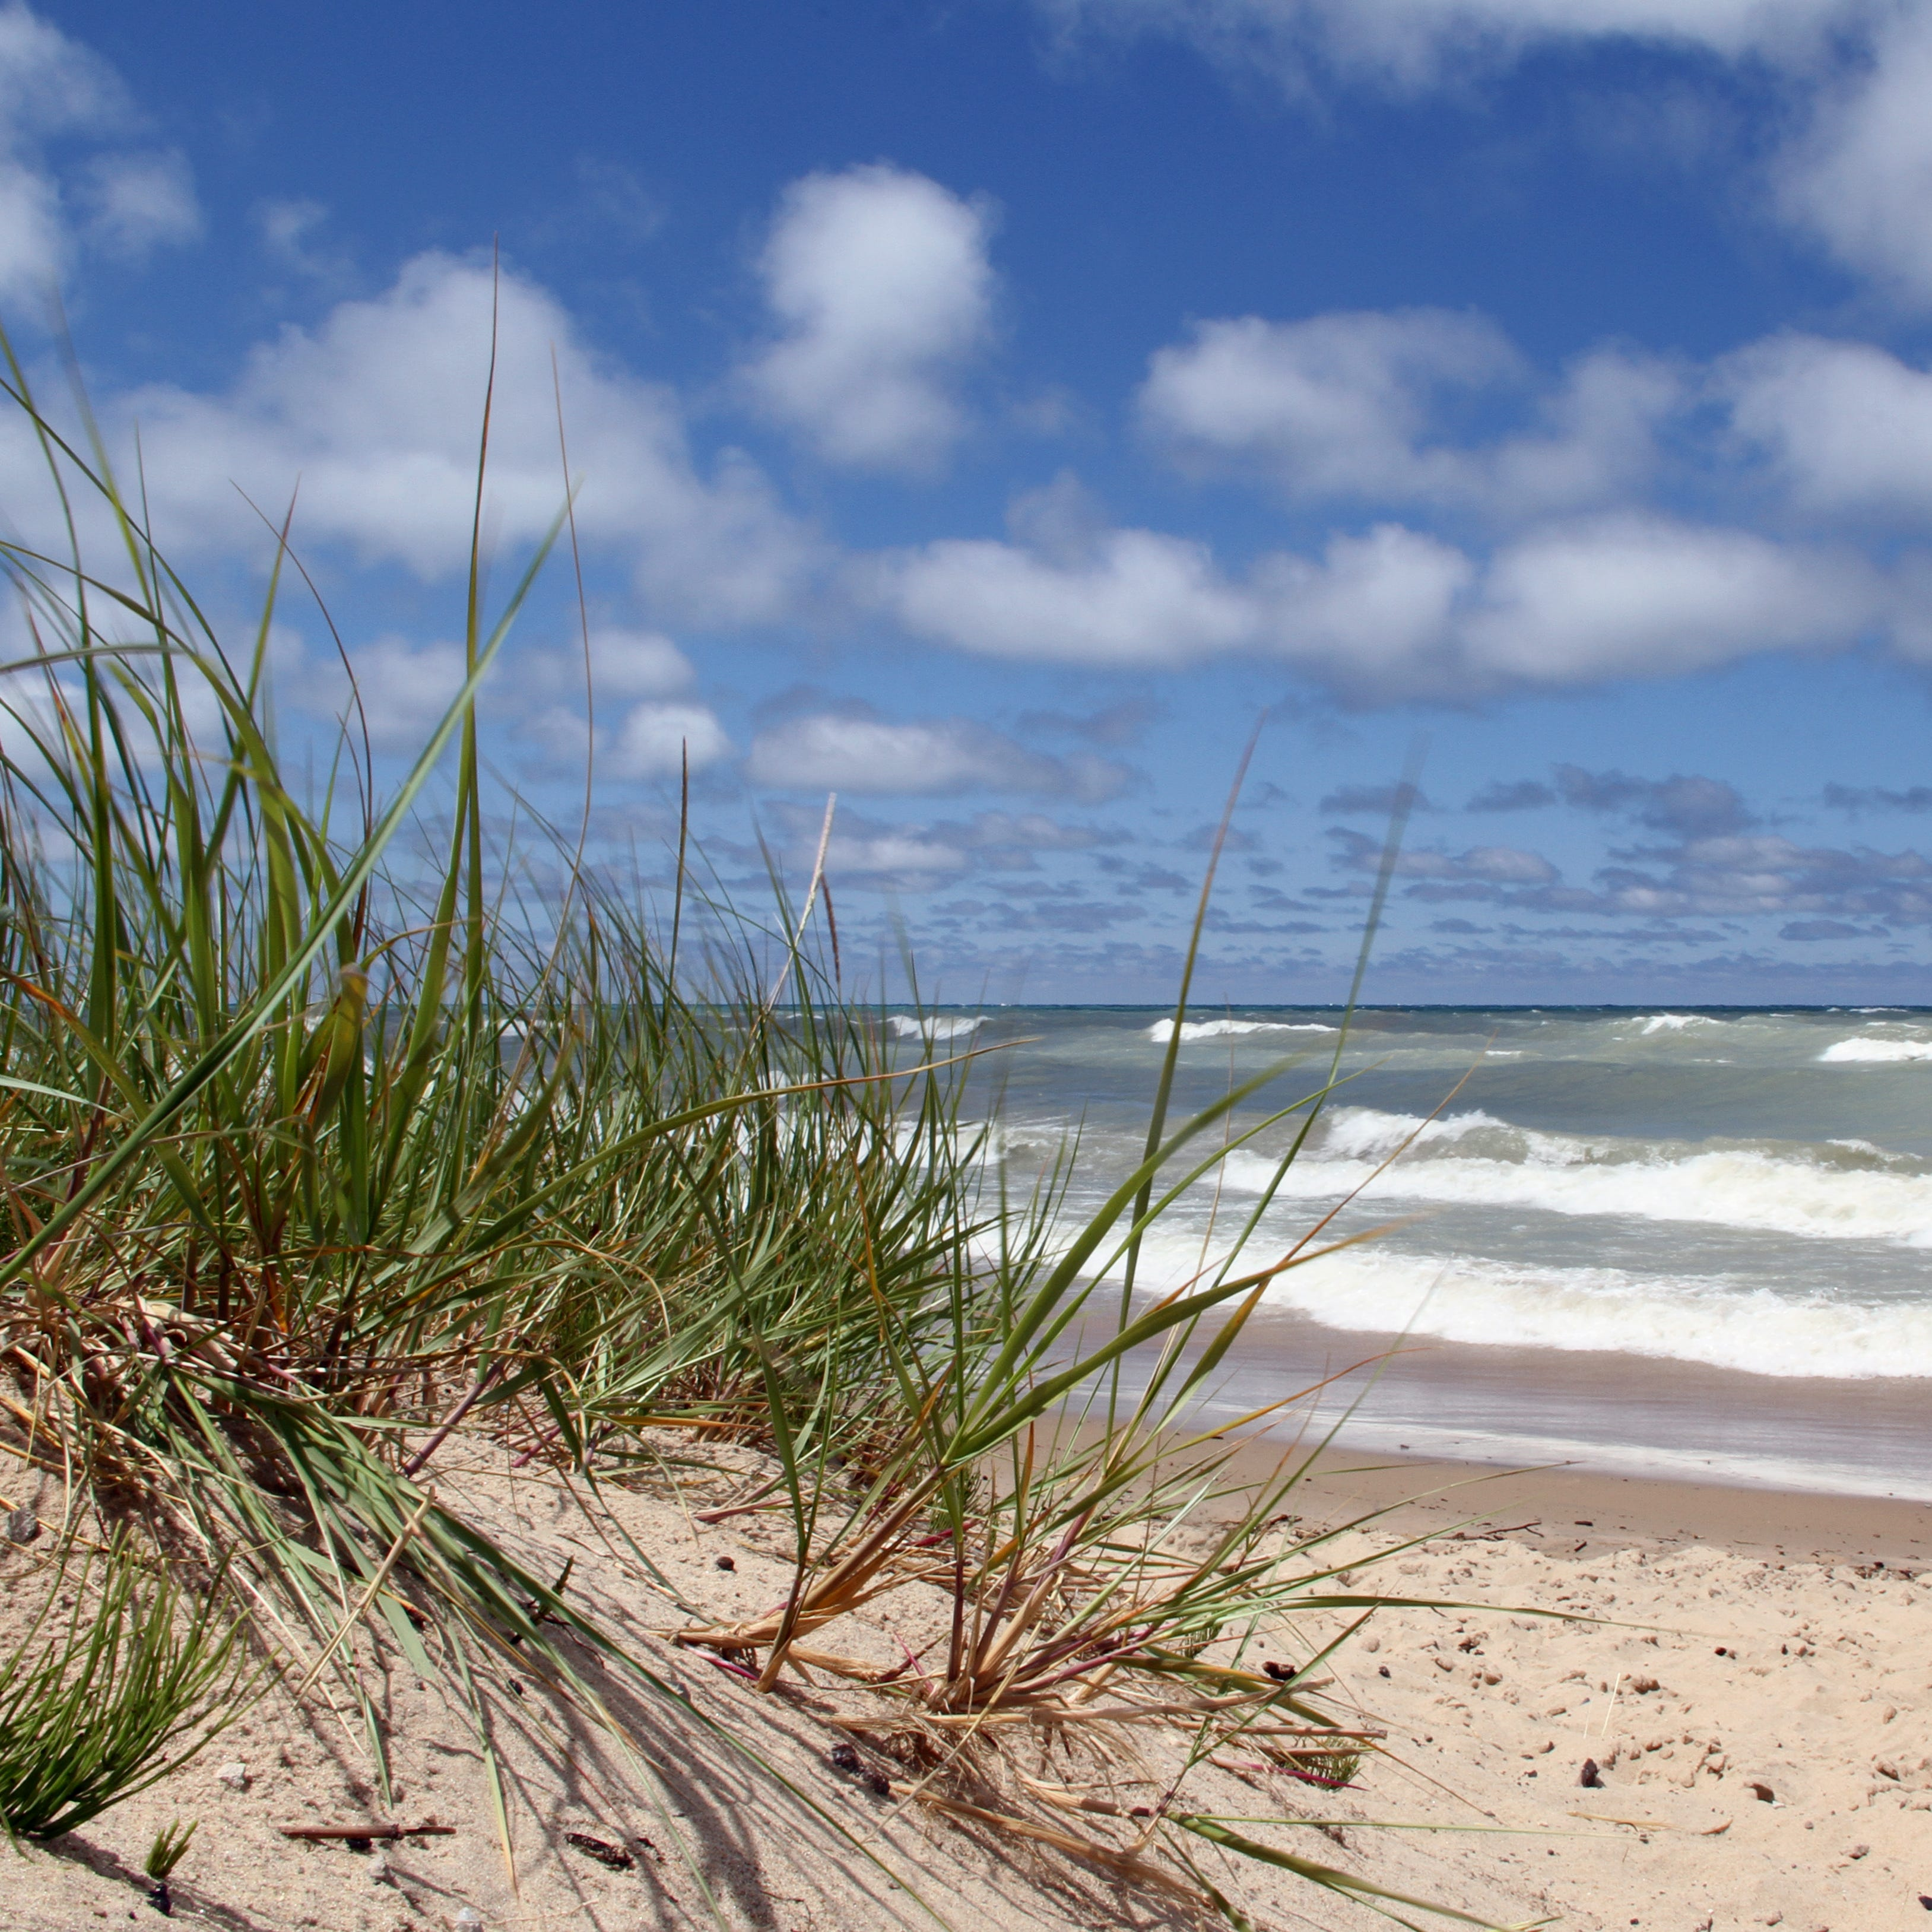 Indiana Dunes: You can now reserve campsites at the newest national park